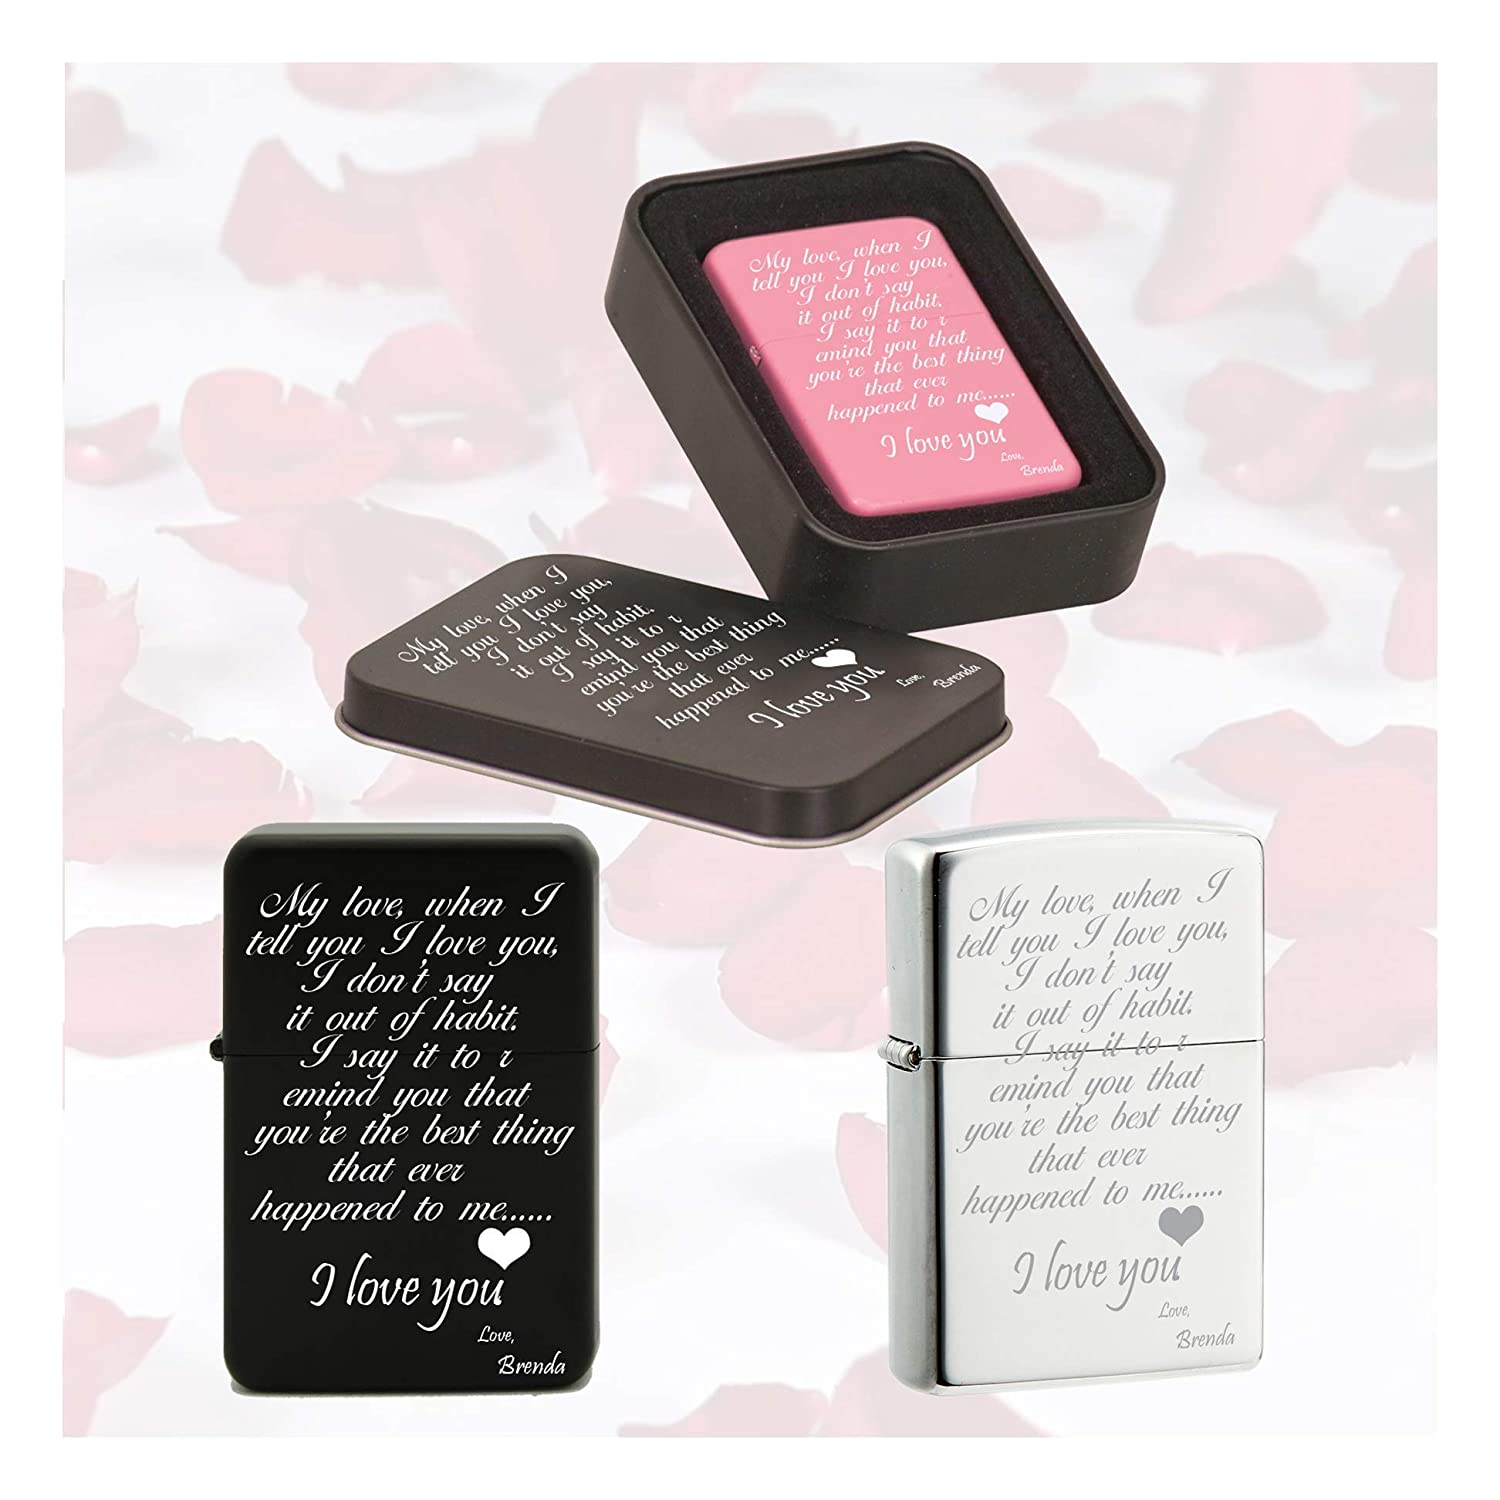 Personalized Customized love quotes Laser engraved Black and Silver Oil lighter w/case Free Engraving on The Box and Lighter